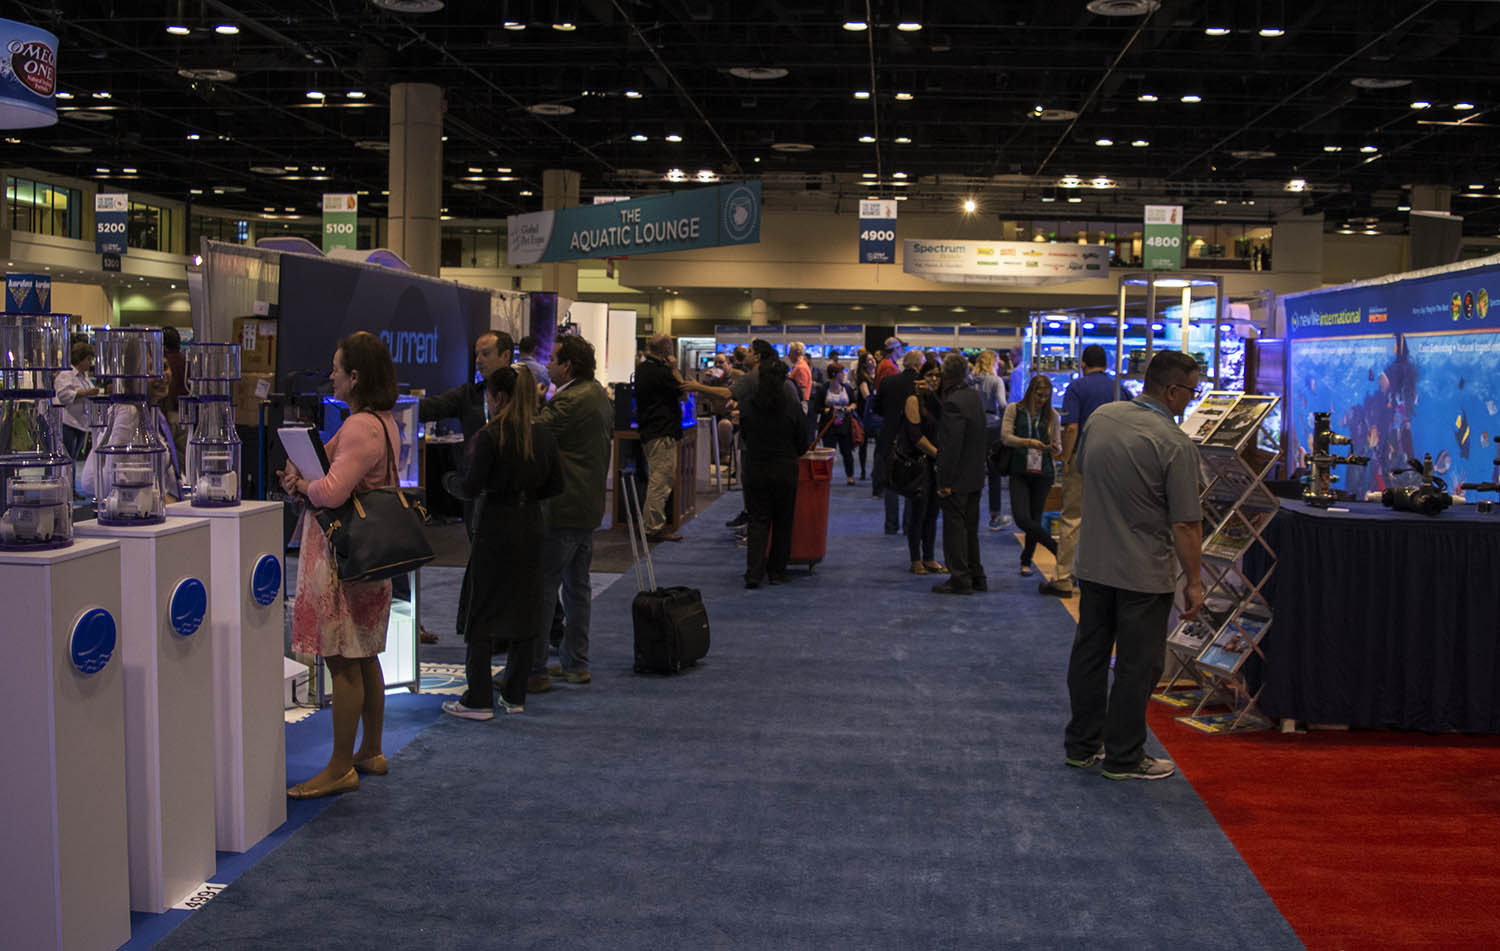 As an industry-only show, Global is a major meeting place for distributors, manufacturers, and retailers